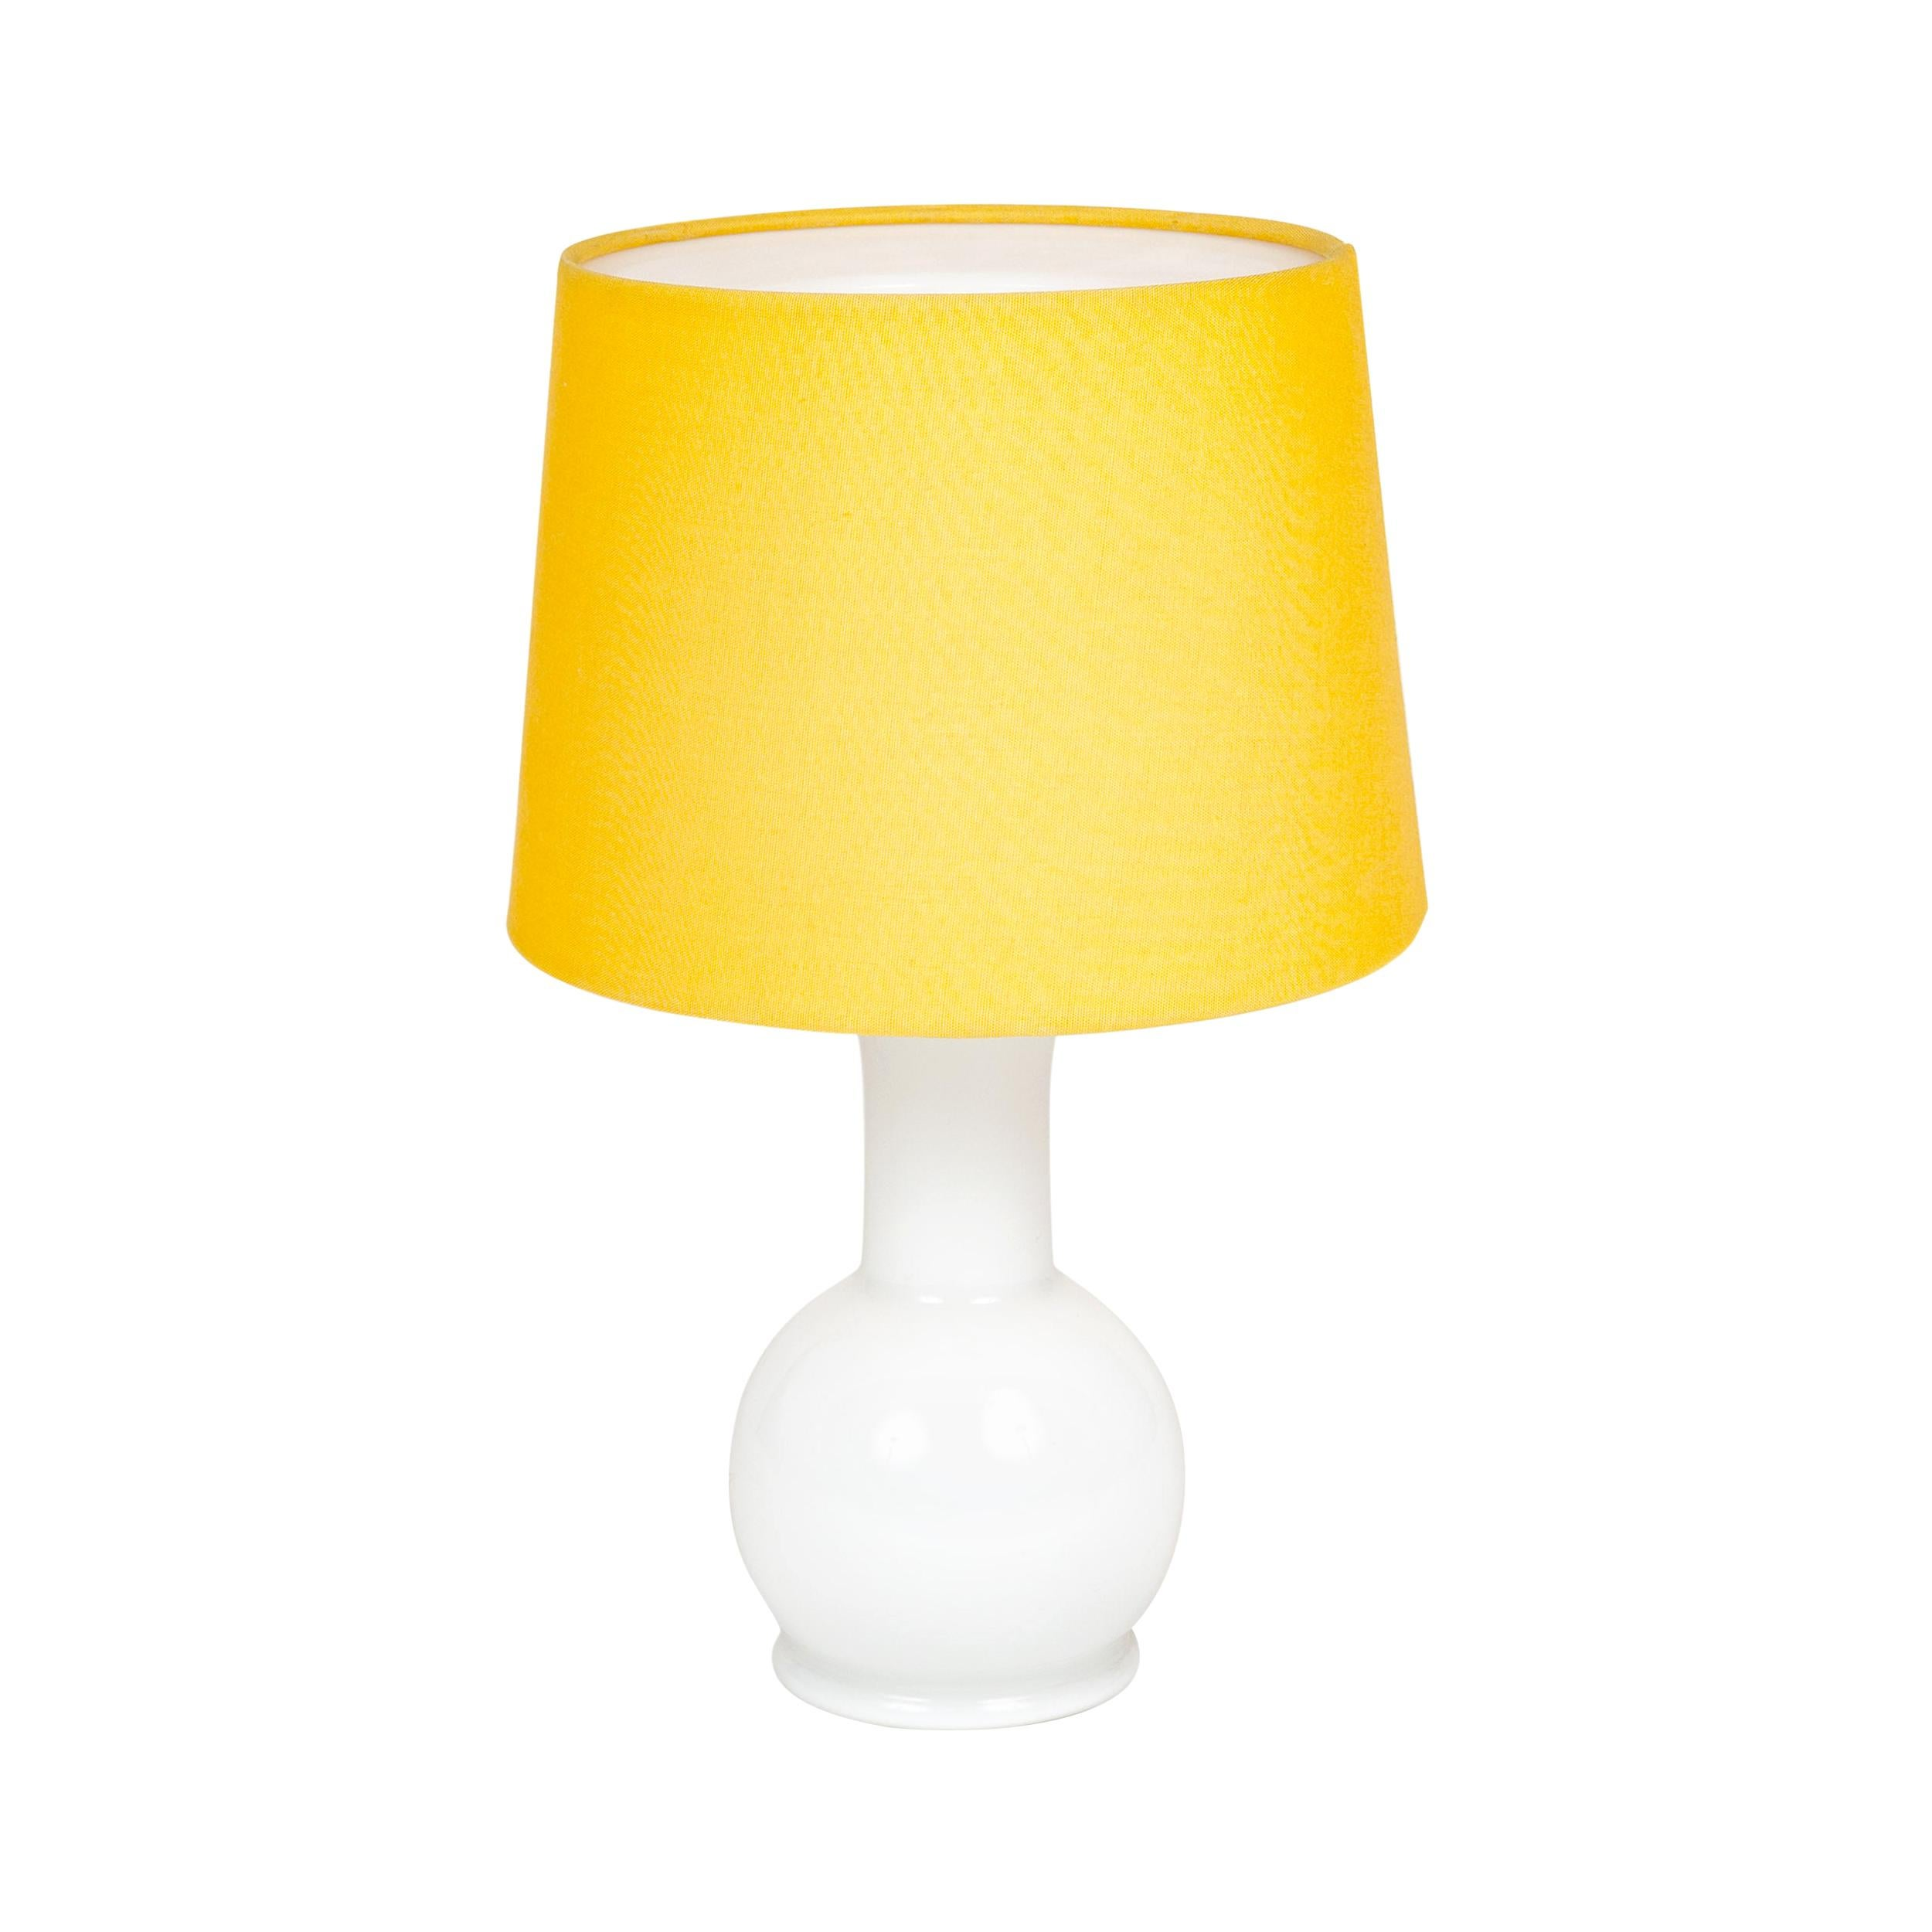 1960s Swedish Glass Table Lamp by Uno & Osten Kristiansson for Luxus